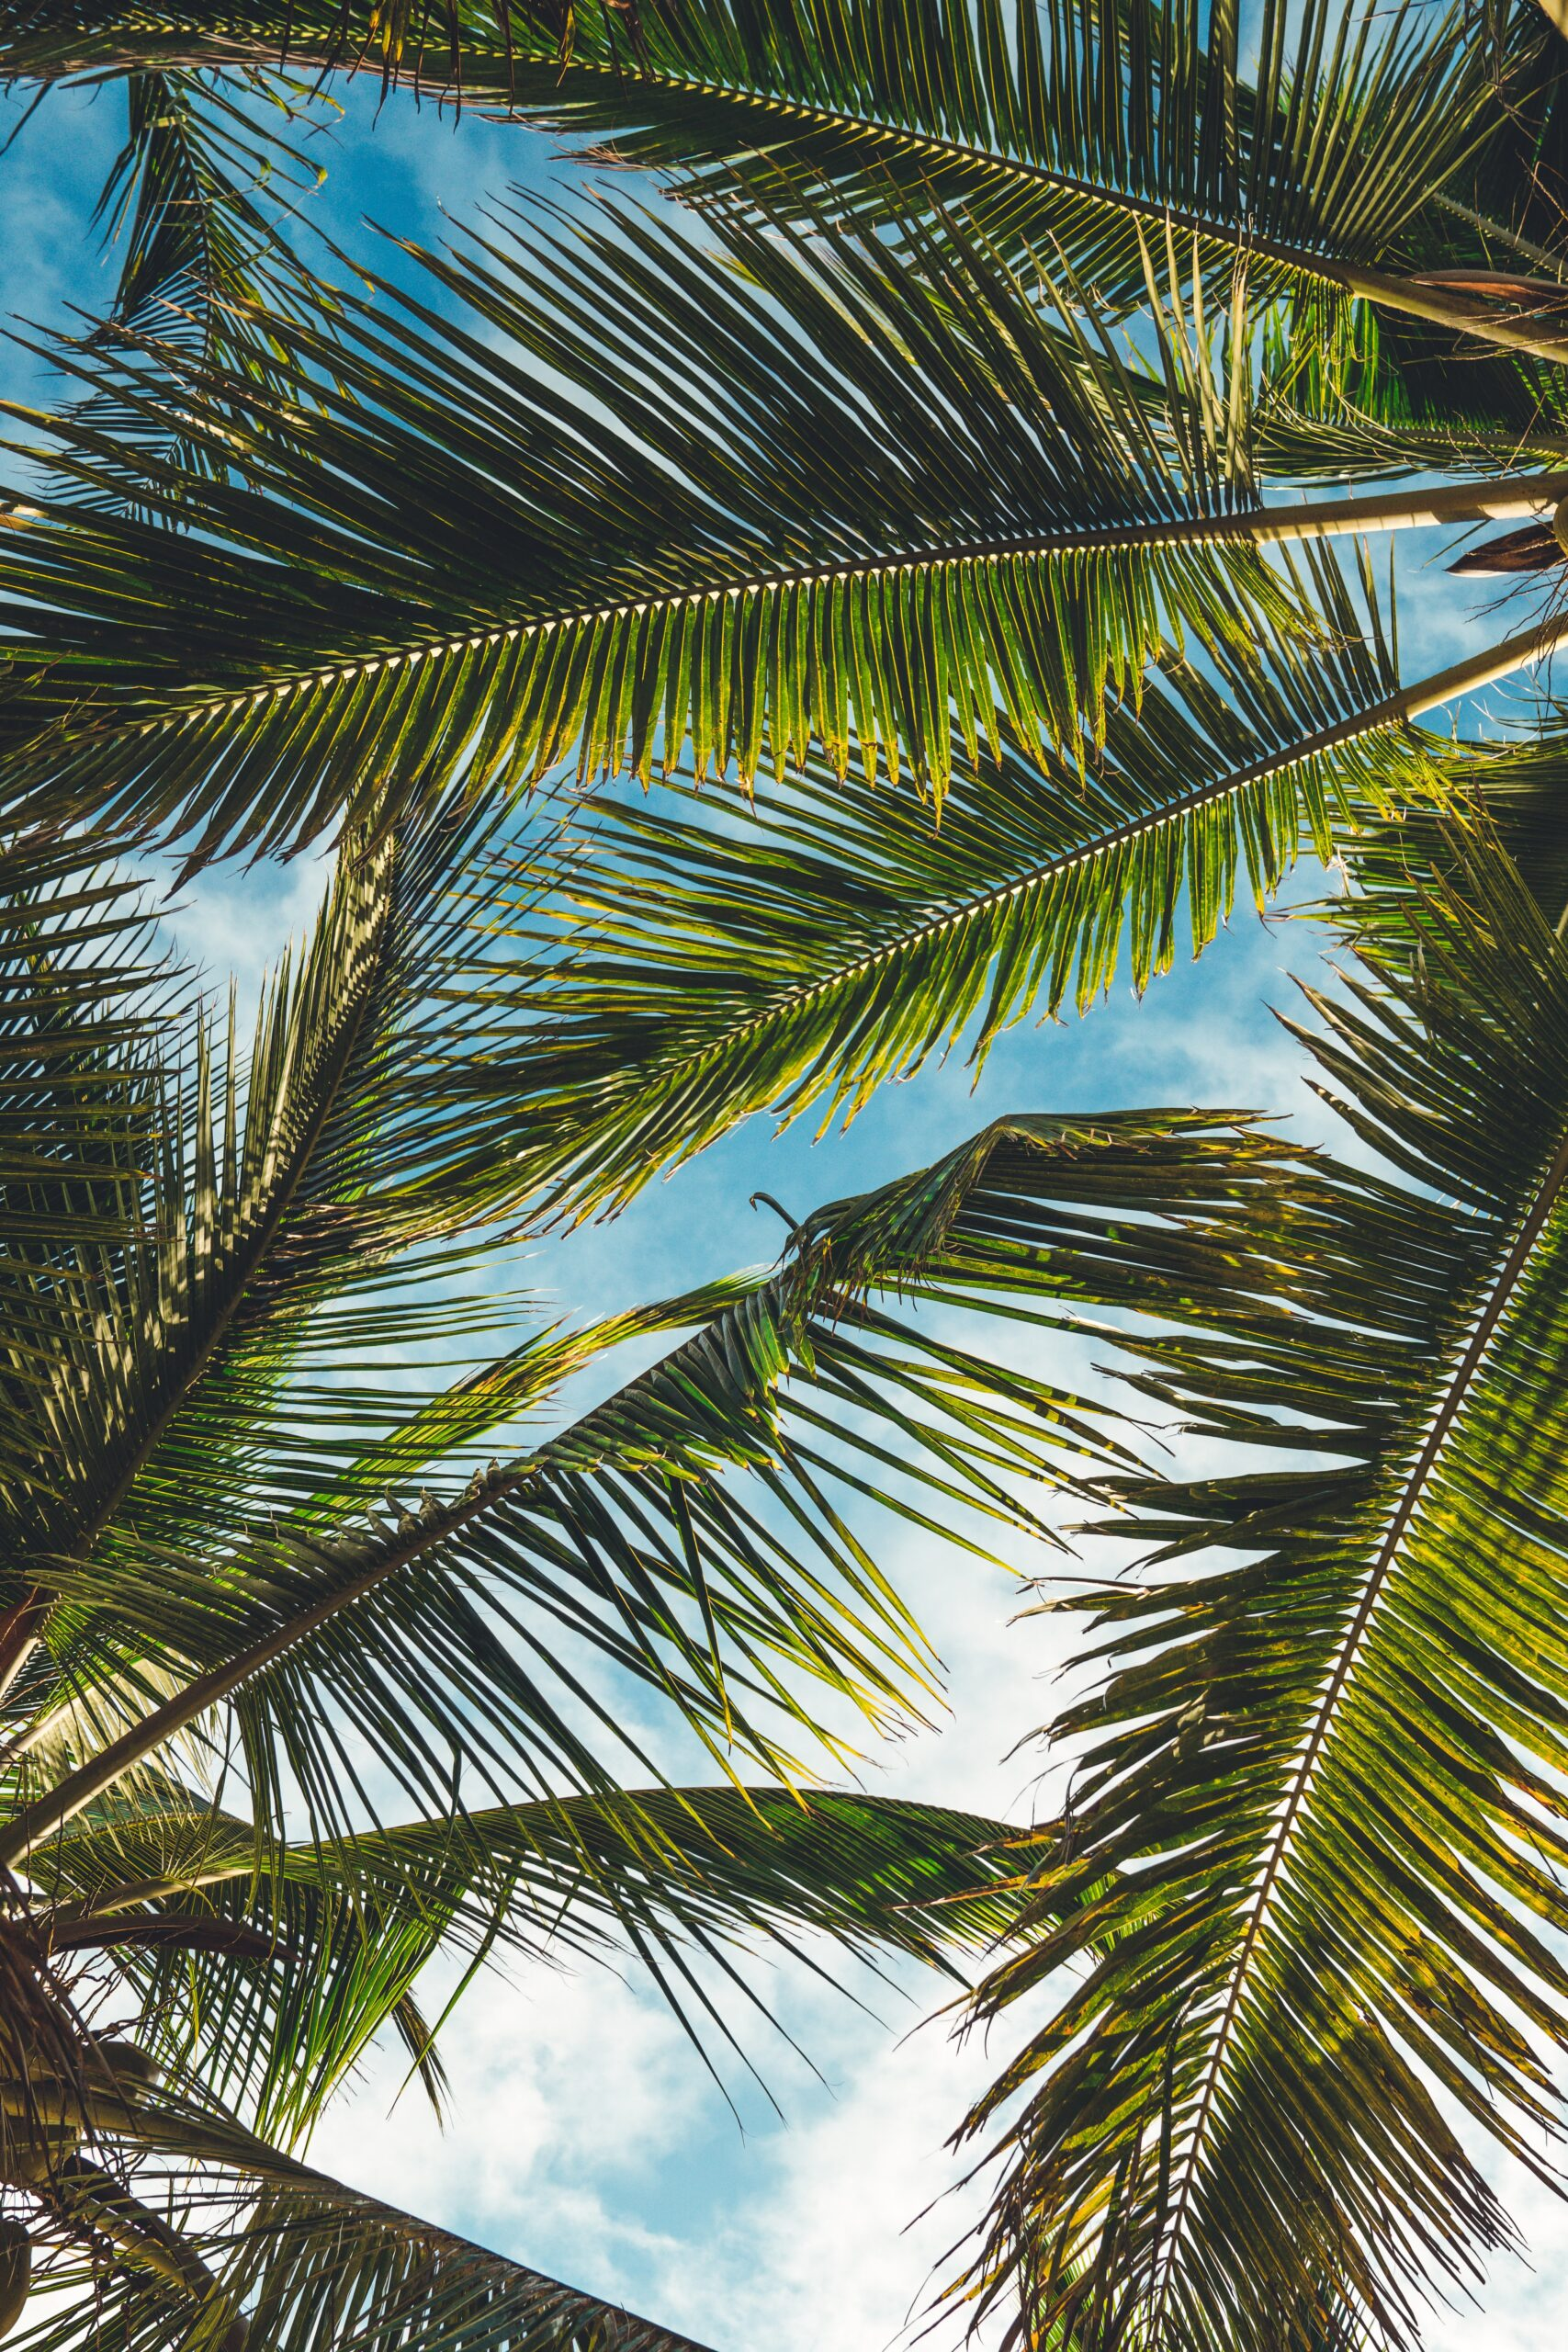 Image of palm trees: a new study identifies the tropics as area with more frequent record-breaking hot years